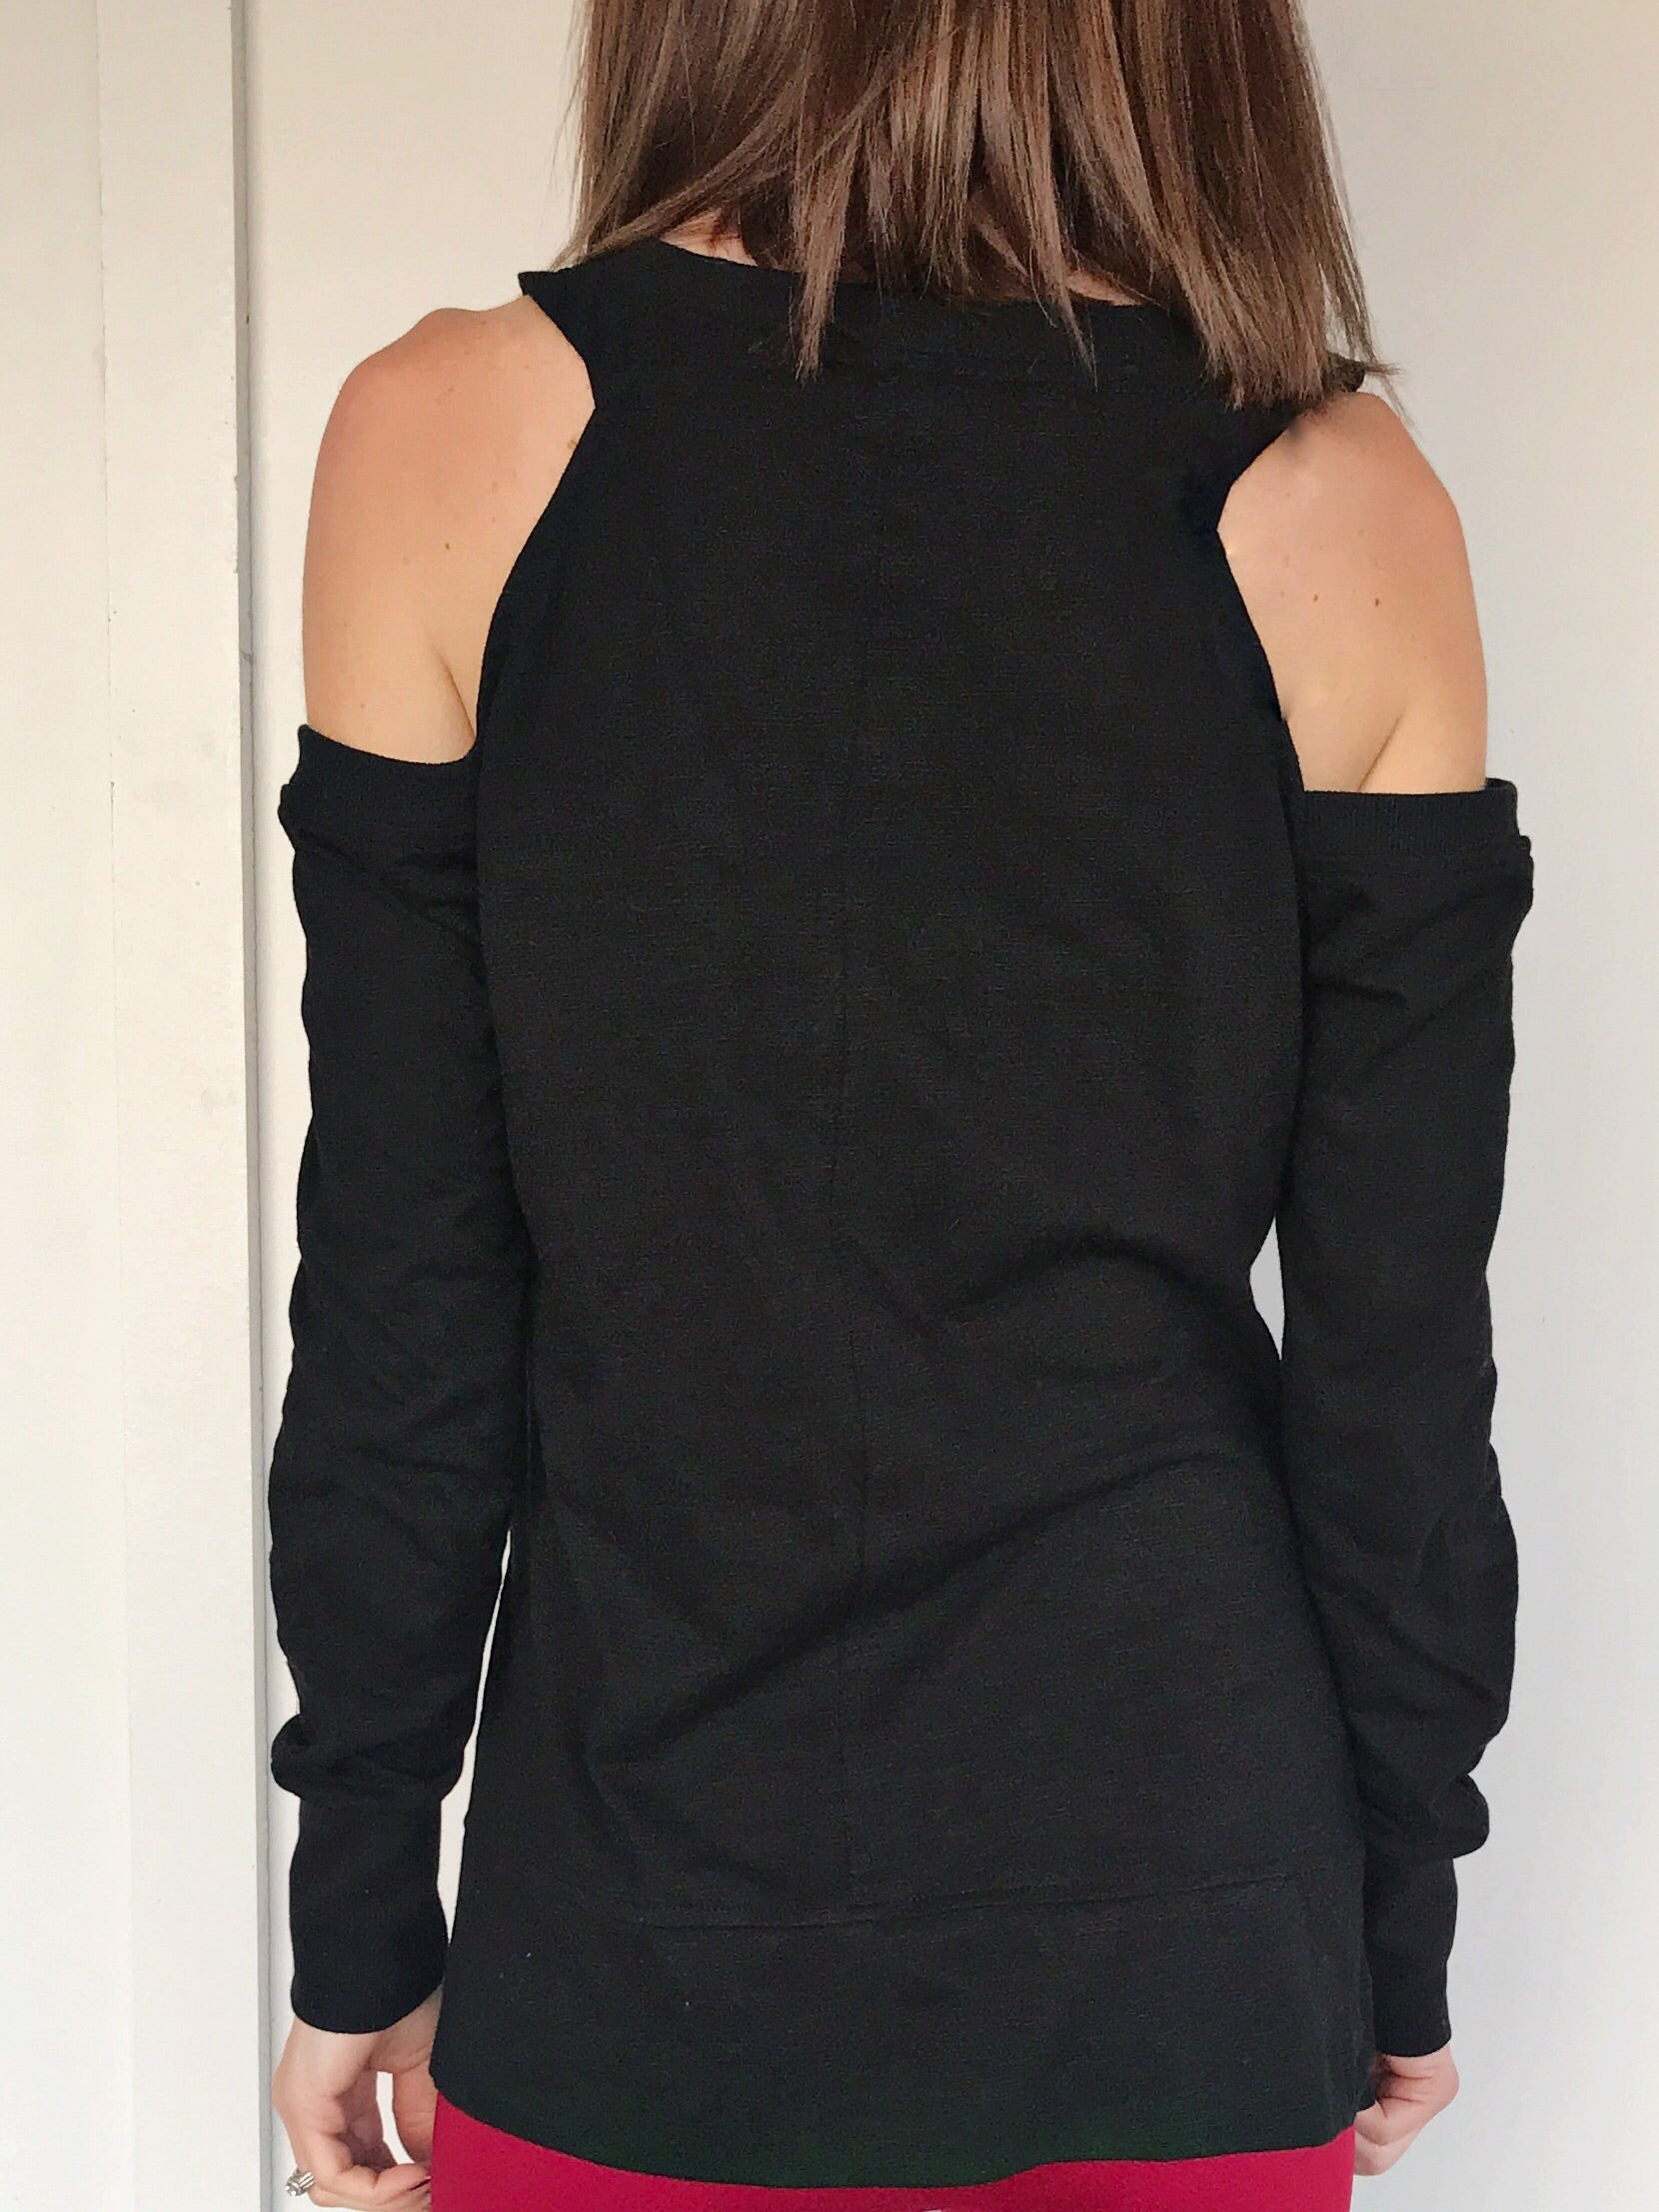 Carlotta Black Cold Shoulder Top